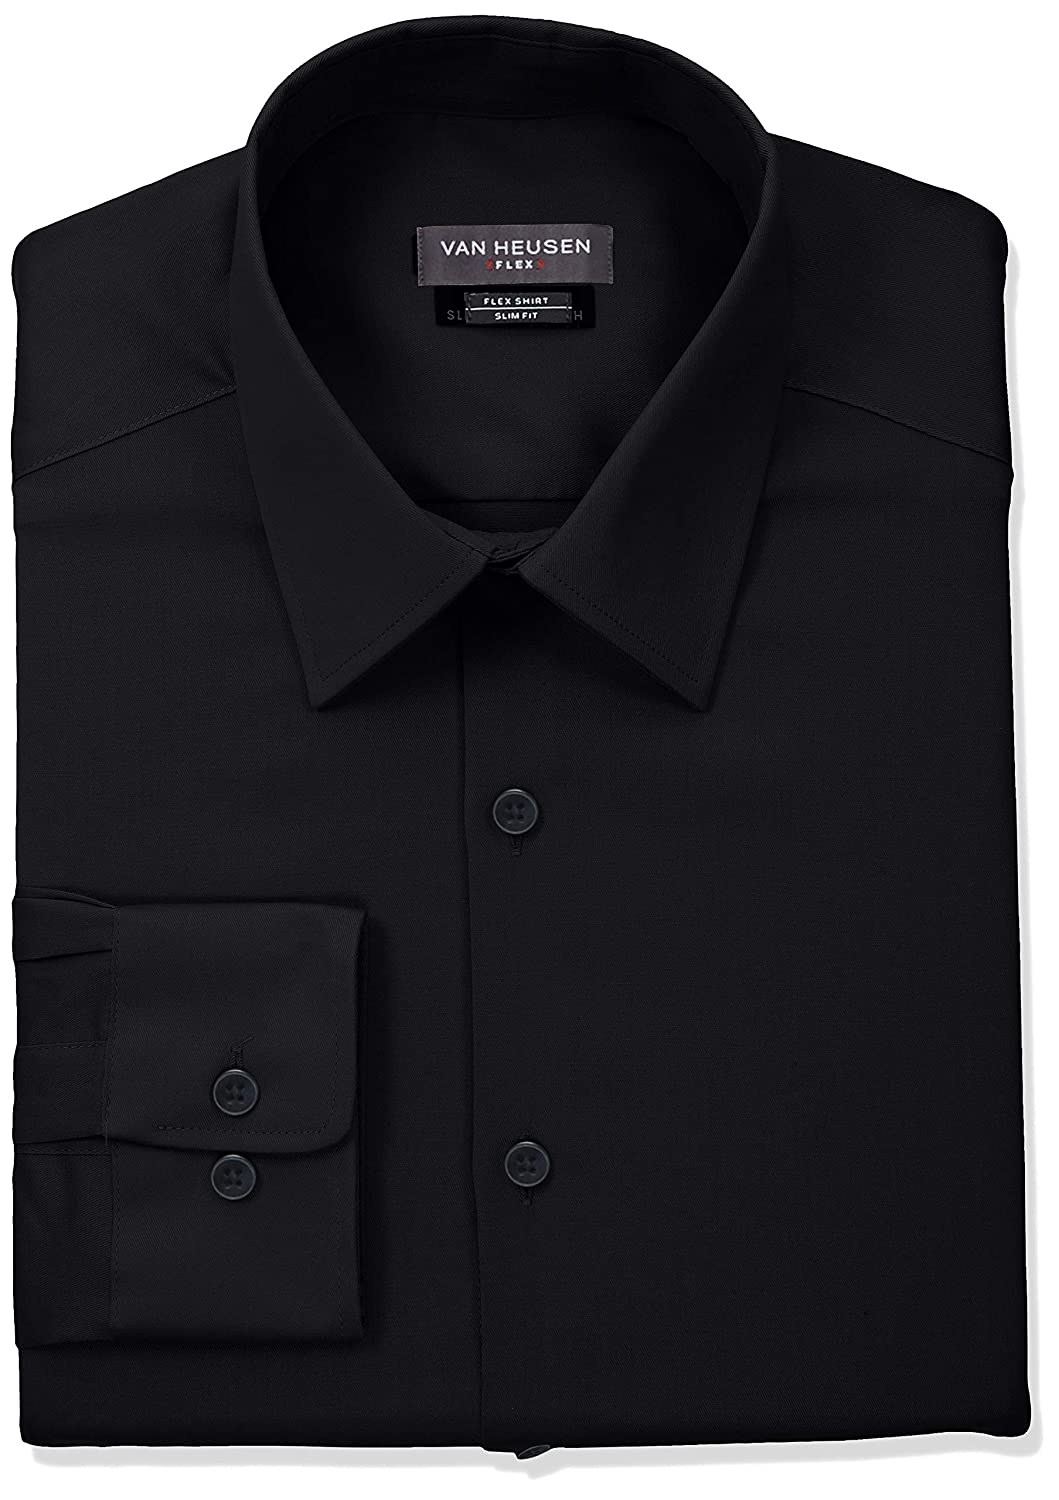 Van Heusen Mens Flex Collar Slim Fit Stretch Dress Shirt At Amazon